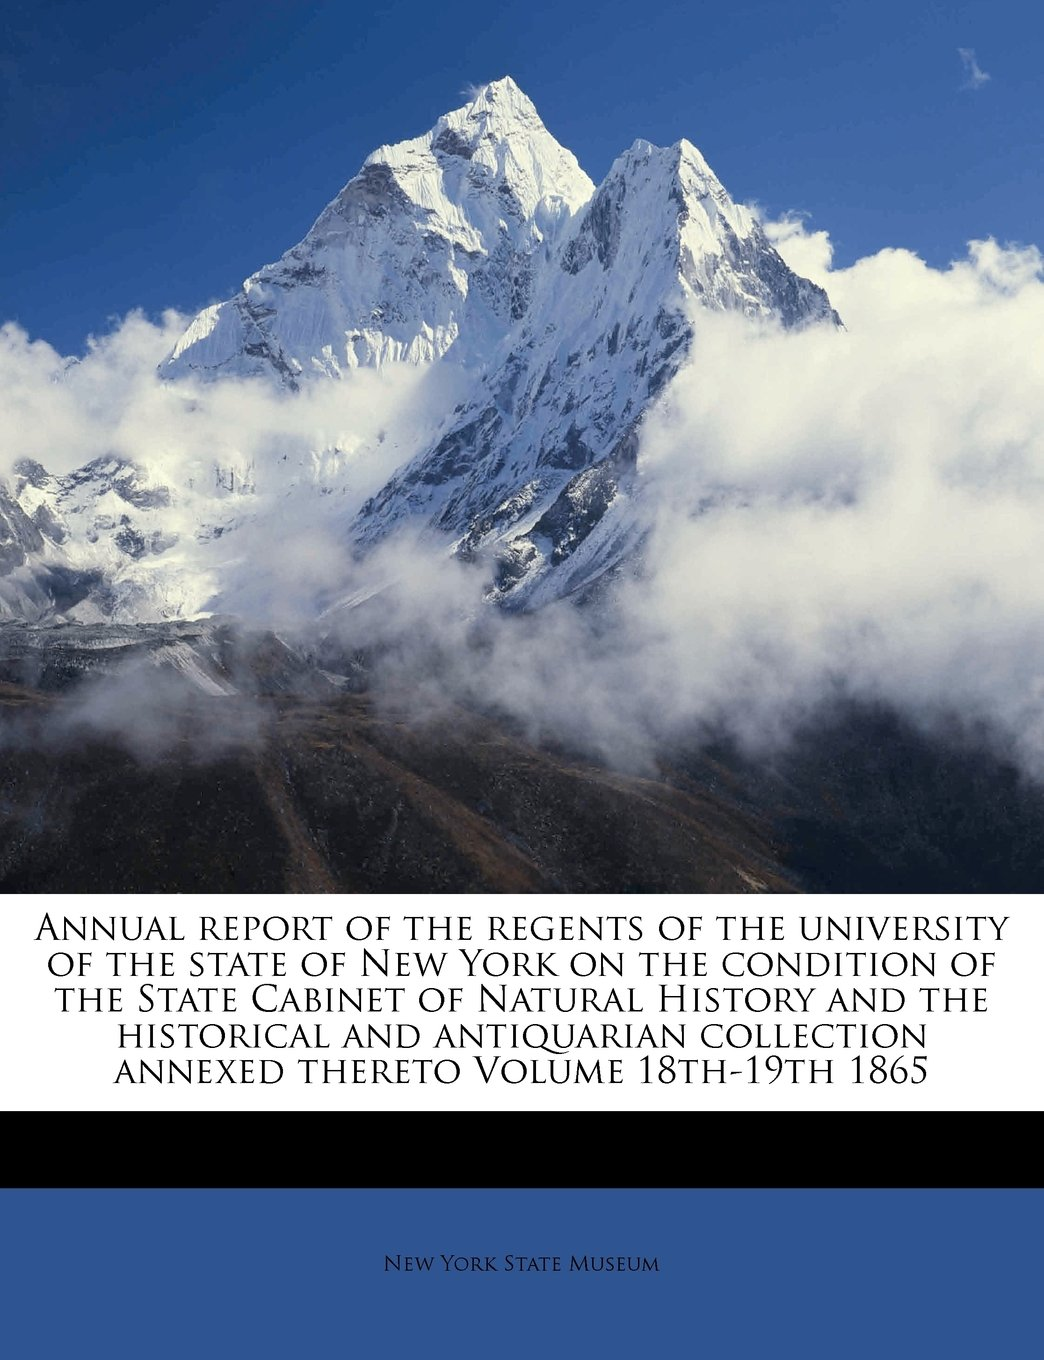 Annual report of the regents of the university of the state of New York on the condition of the State Cabinet of Natural History and the historical ... annexed thereto Volume 18th-19th 1865 PDF